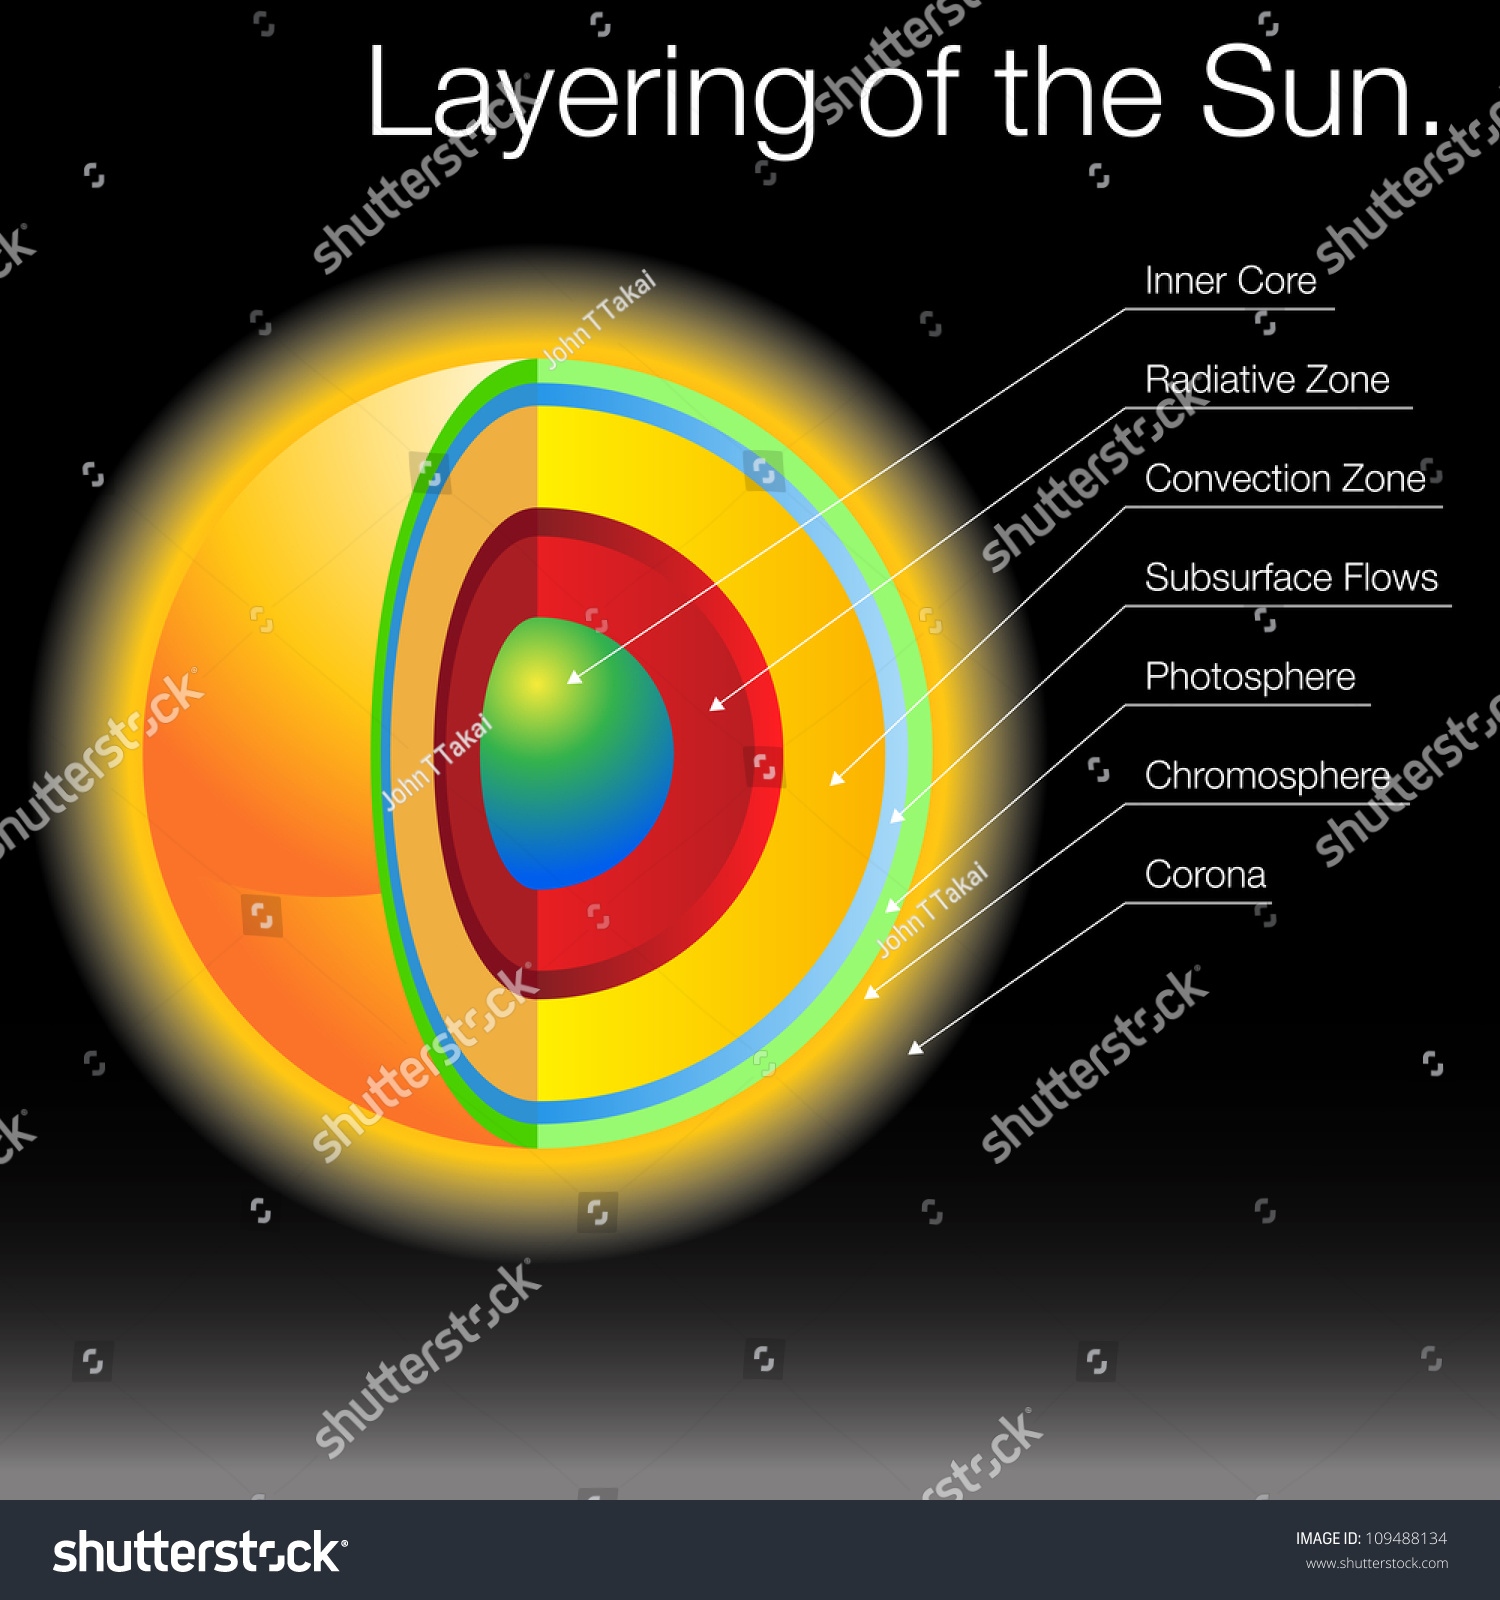 layers of the sun diagram 9n 12 volt conversion wiring image stock vector 109488134 shutterstock